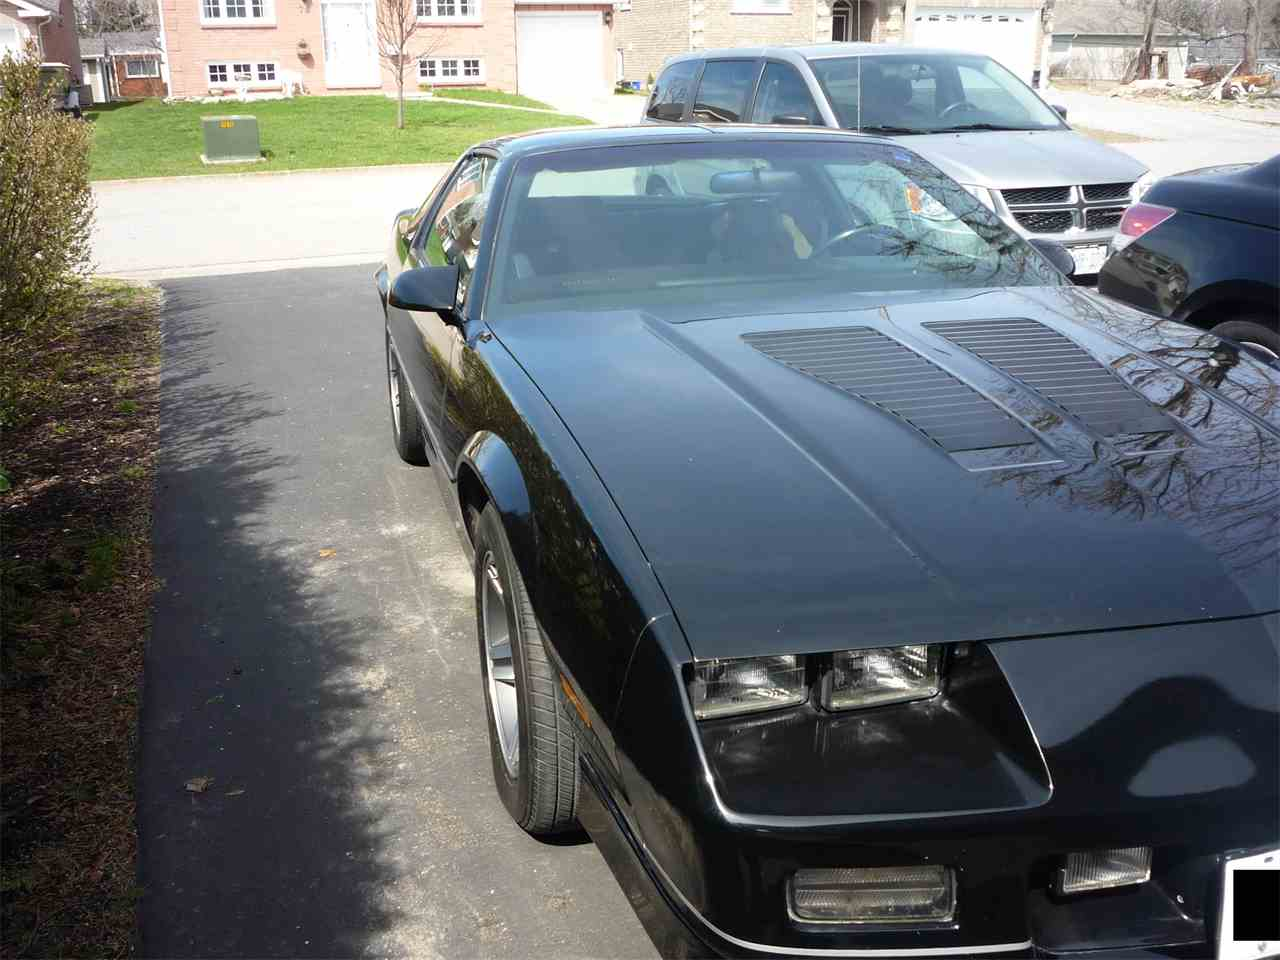 Large Picture of '86 Camaro IROC-Z located in Ontario - $12,000.00 Offered by a Private Seller - GK6I